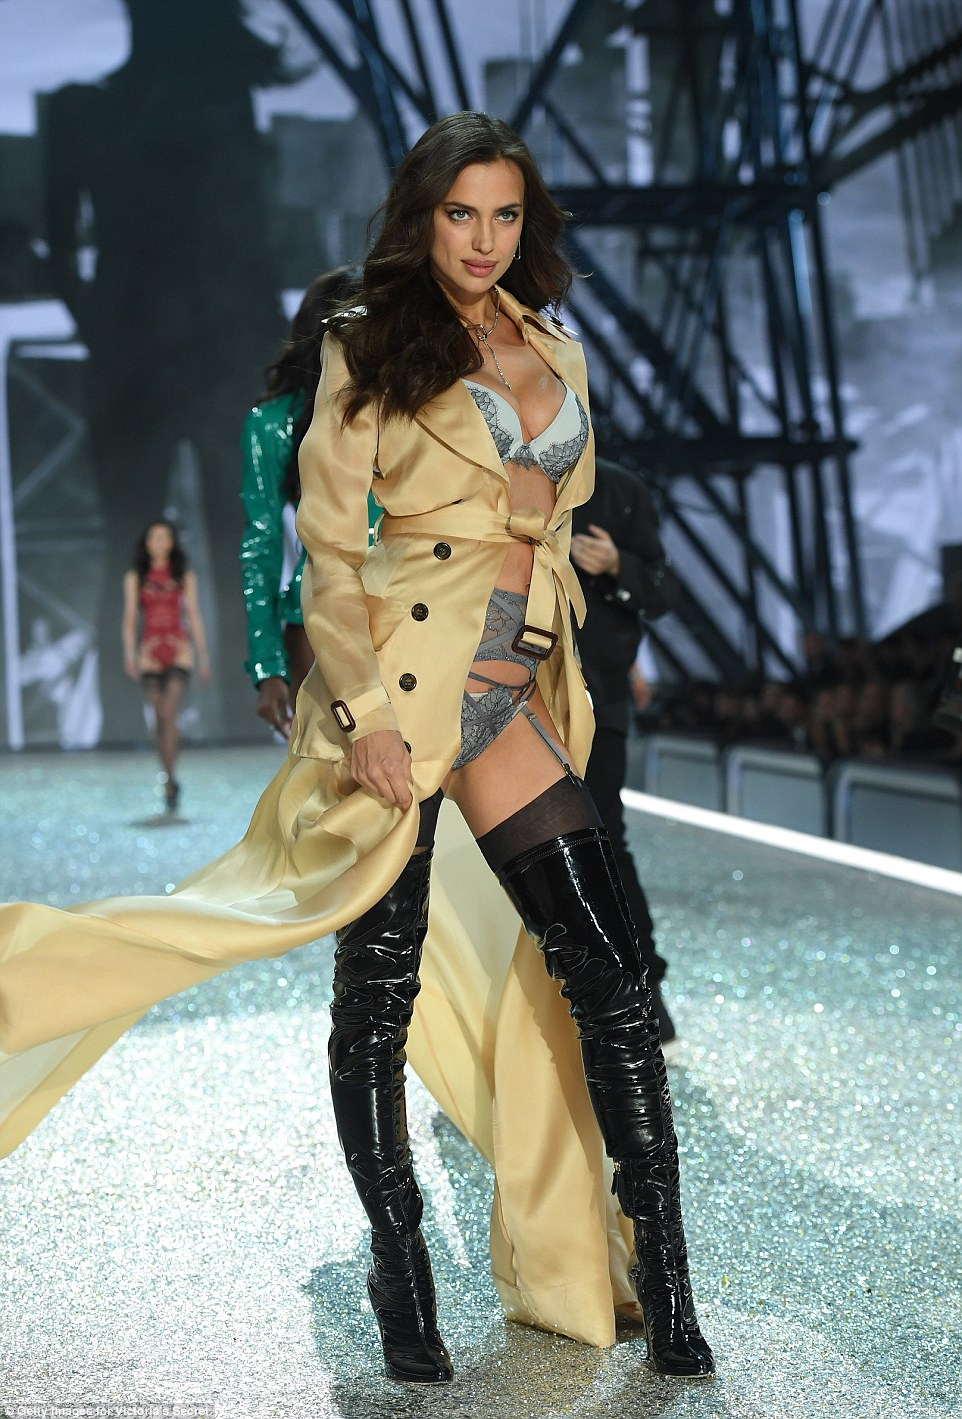 Pout of control: Irina Shayk smouldered in her sexy mac as she made sure all eyes were on her